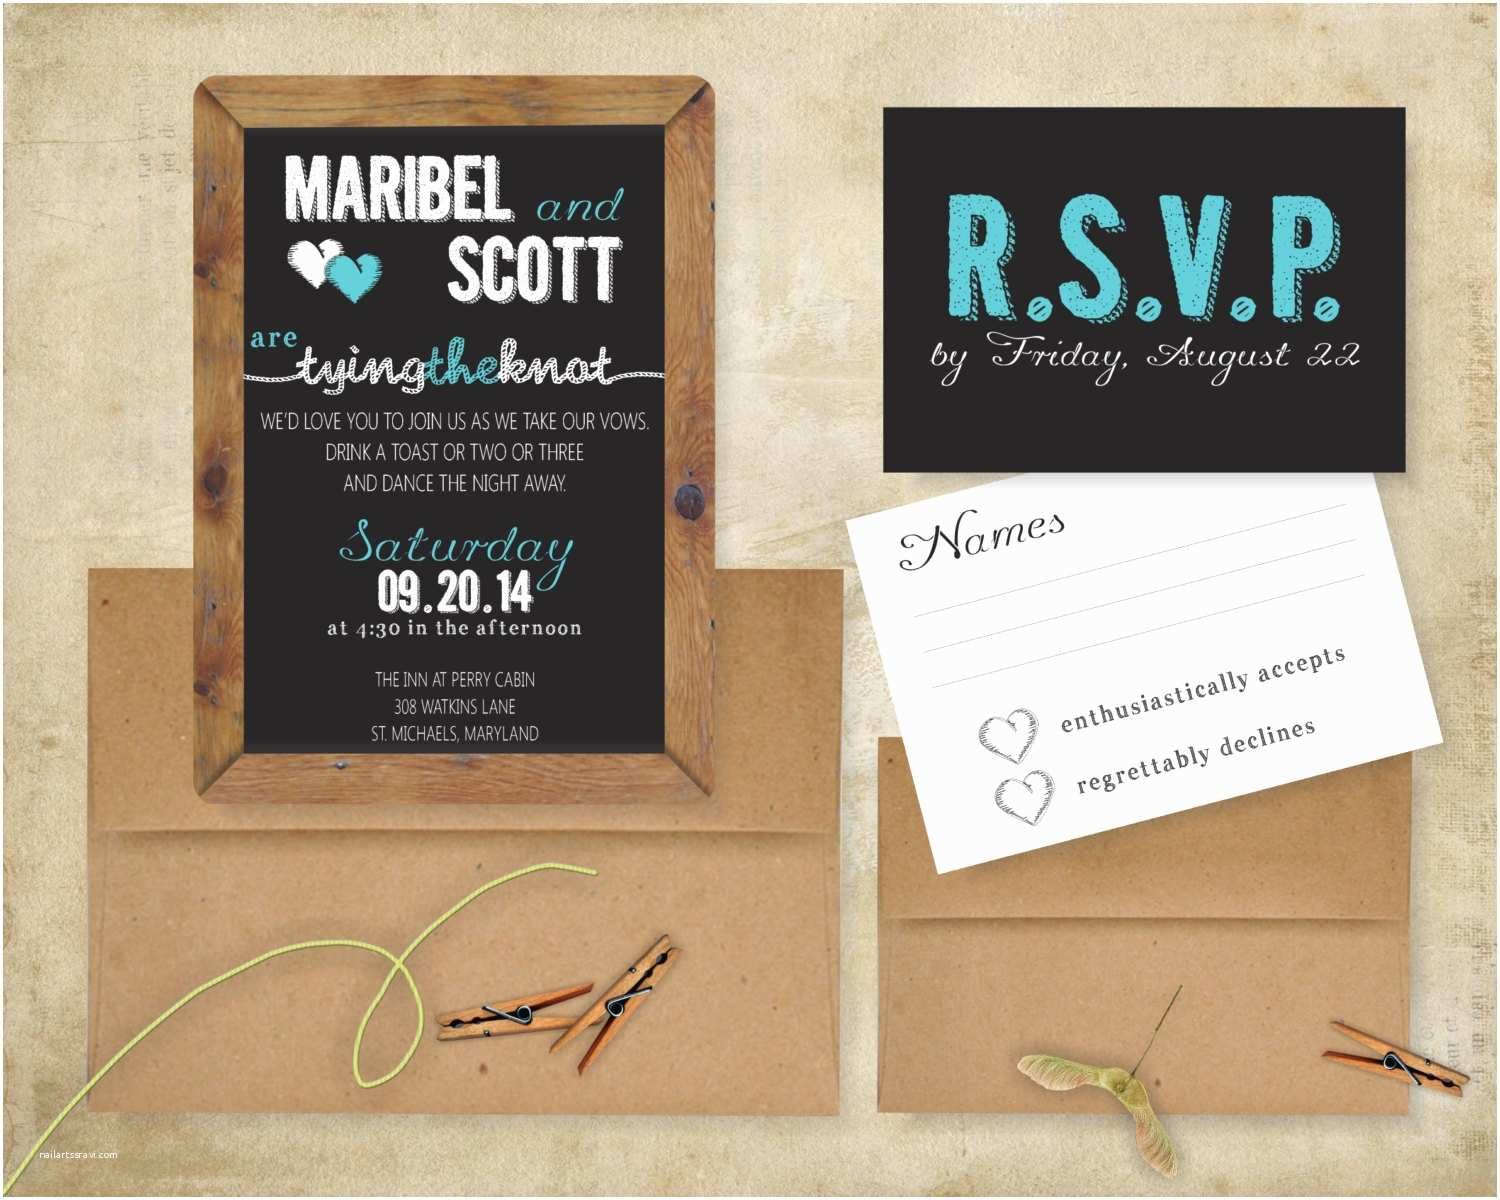 The Knot Wedding Invitations Tying the Knot Chalkboard Rustic Wedding Invitation Suite 5x7